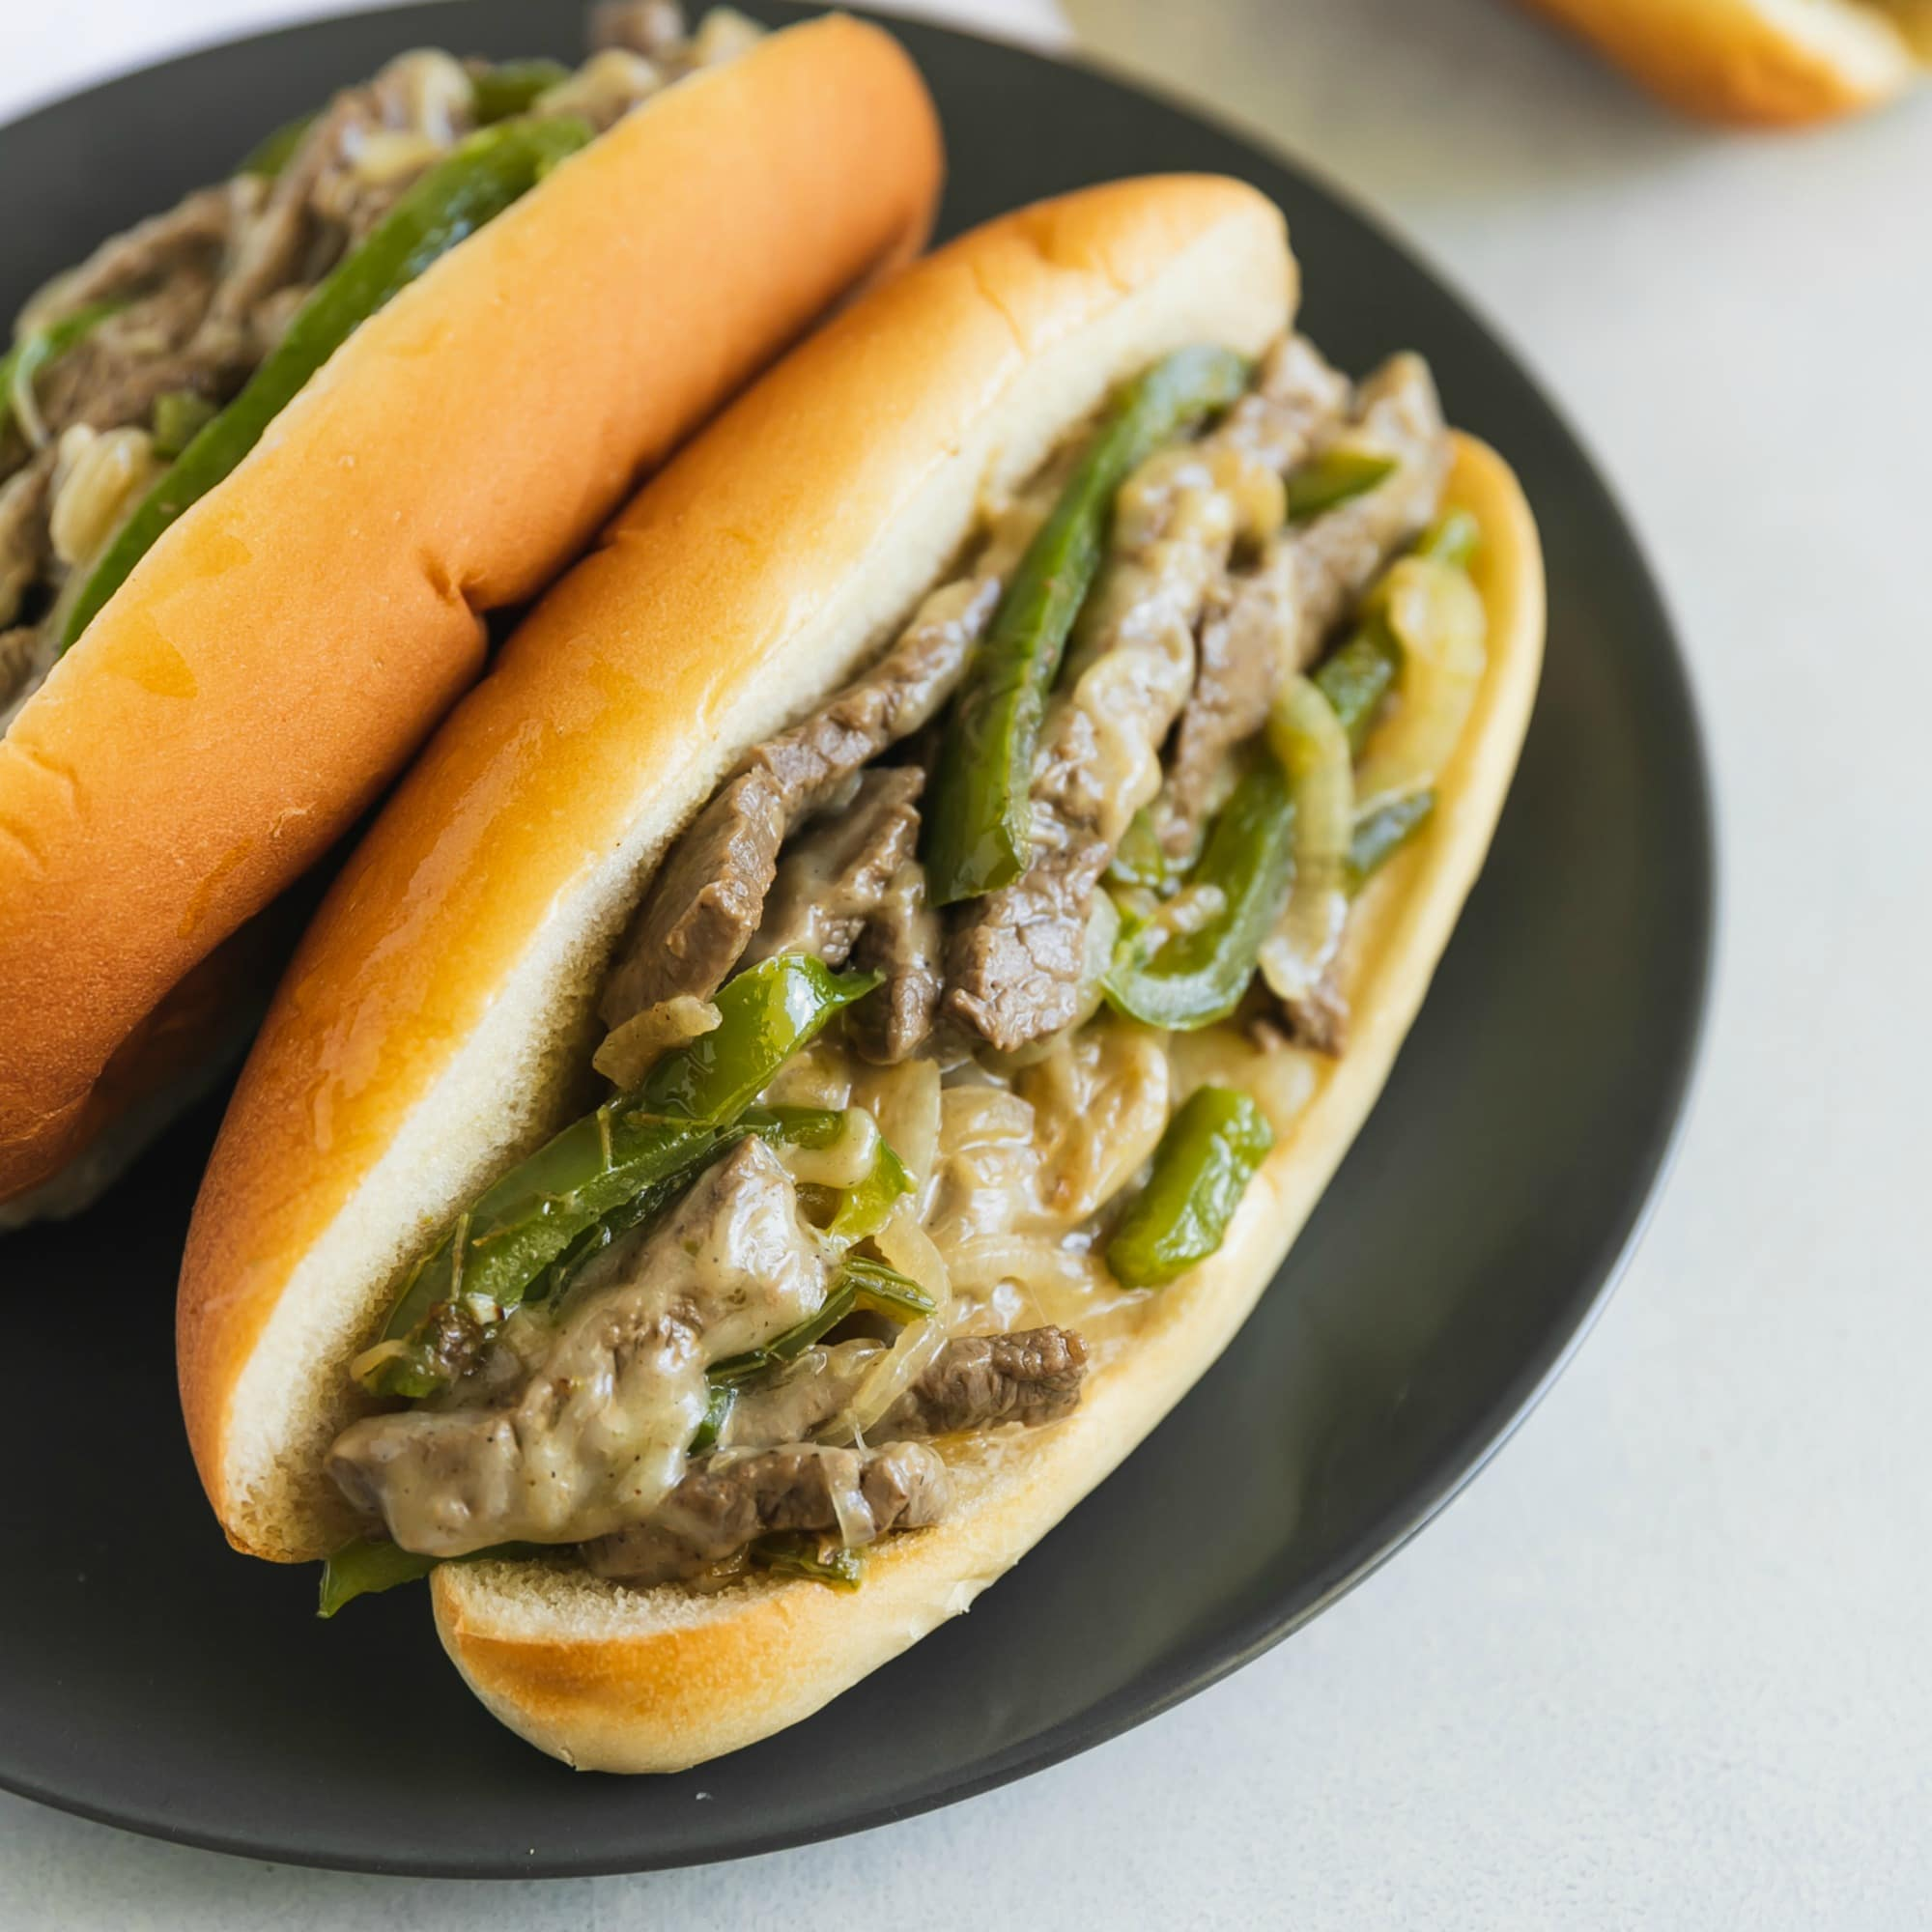 Ever heard of a sandwich so popular, that it's become an ingredient all by itself? That's right: the Philly Cheese Steak can also be pizza topping, a potato chip, and even a soup. But let's explore the real deal, the famous sandwich that is loved (and debated) far and wide by everyone who bites into it. Tender thin beef, onions, and gobs of gooey provolone on a bun that soaks up every last bit of flavor. Nothing could be better than this recipe, in or outside of Philadelphia.